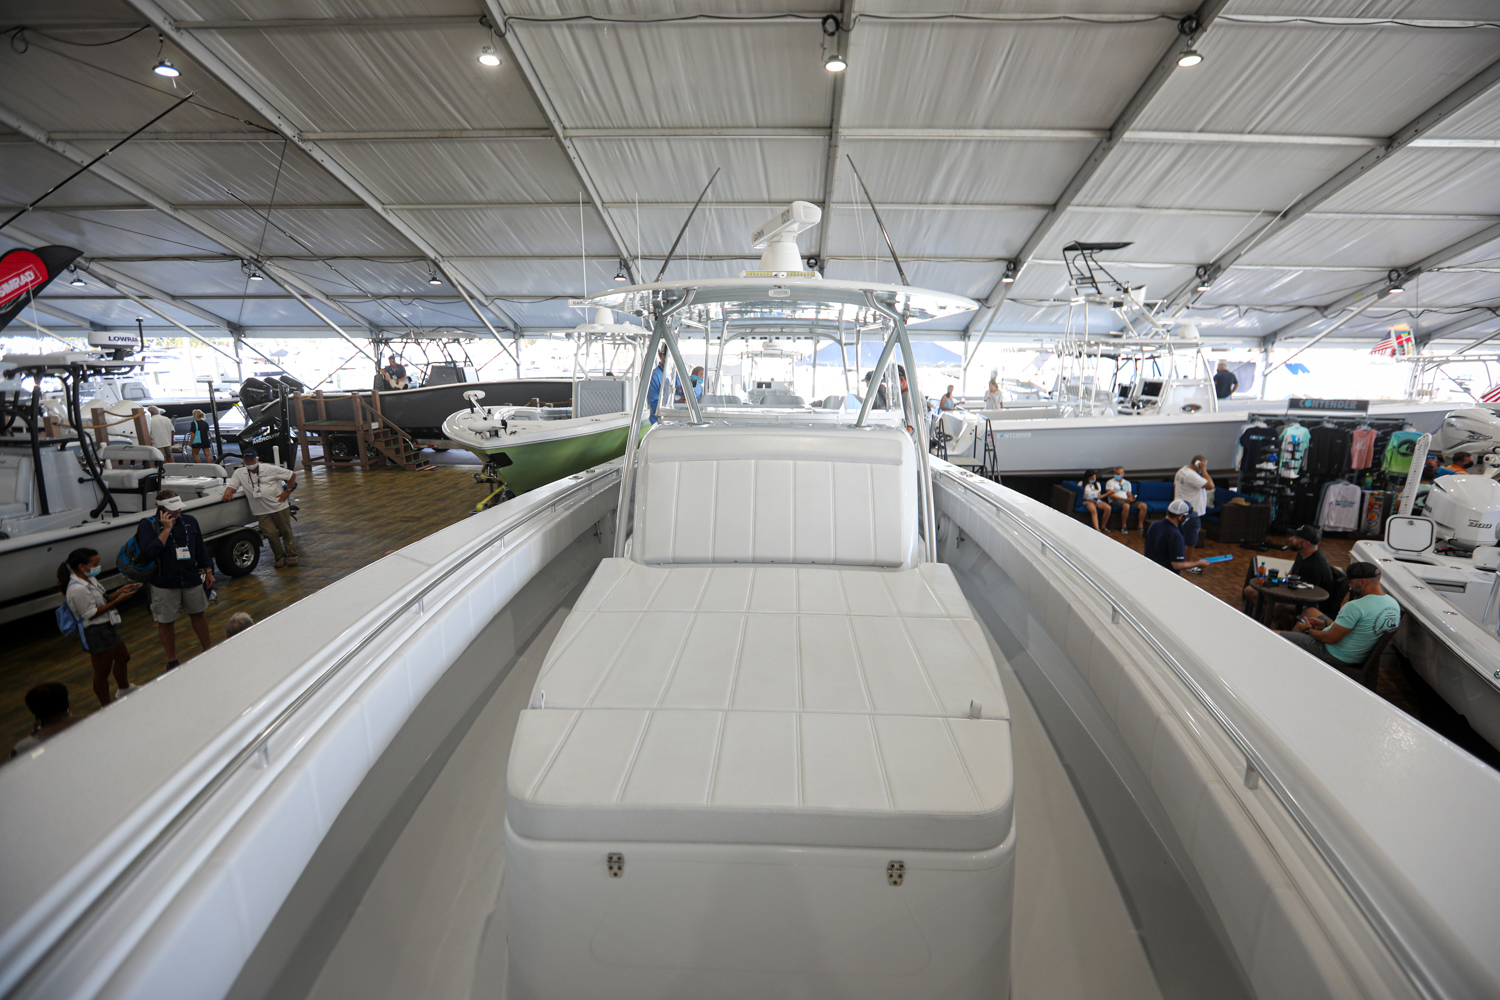 contender 44fa at fort lauderdale boat show